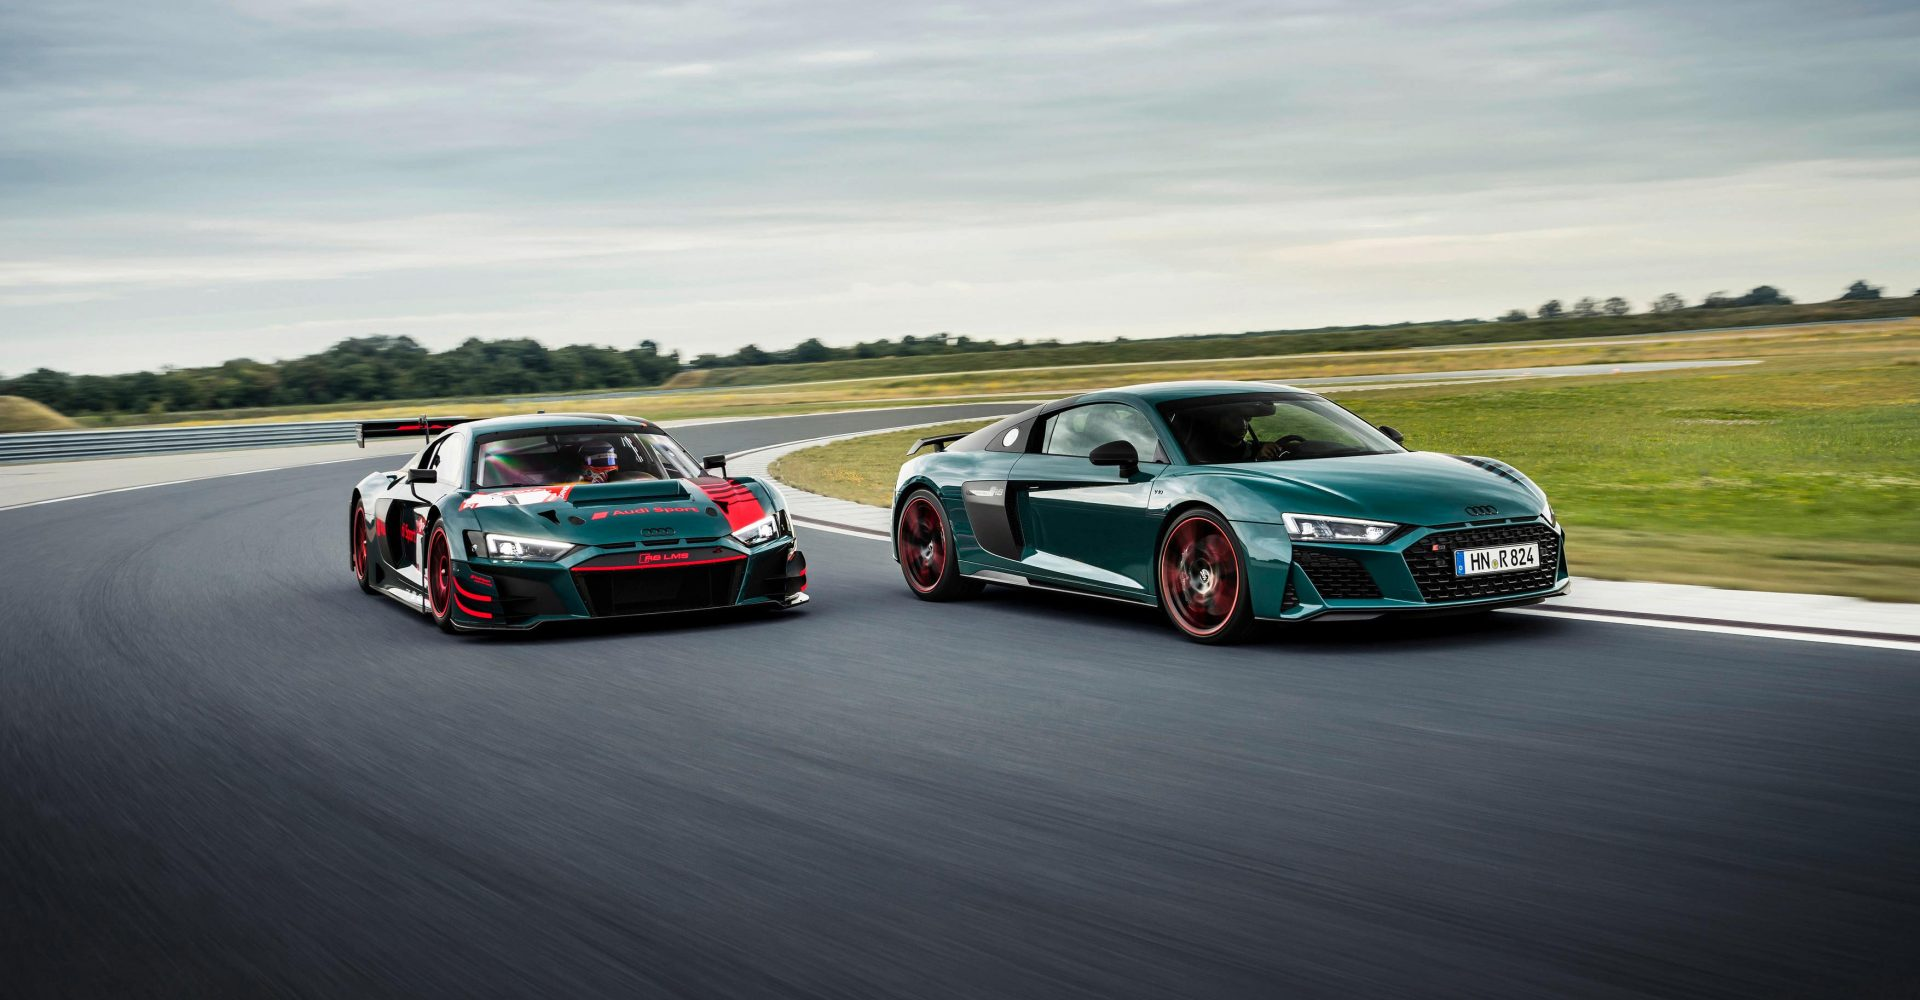 Audi R8 Green Hell is a limited-edition tribute to firm's Nurburgring success